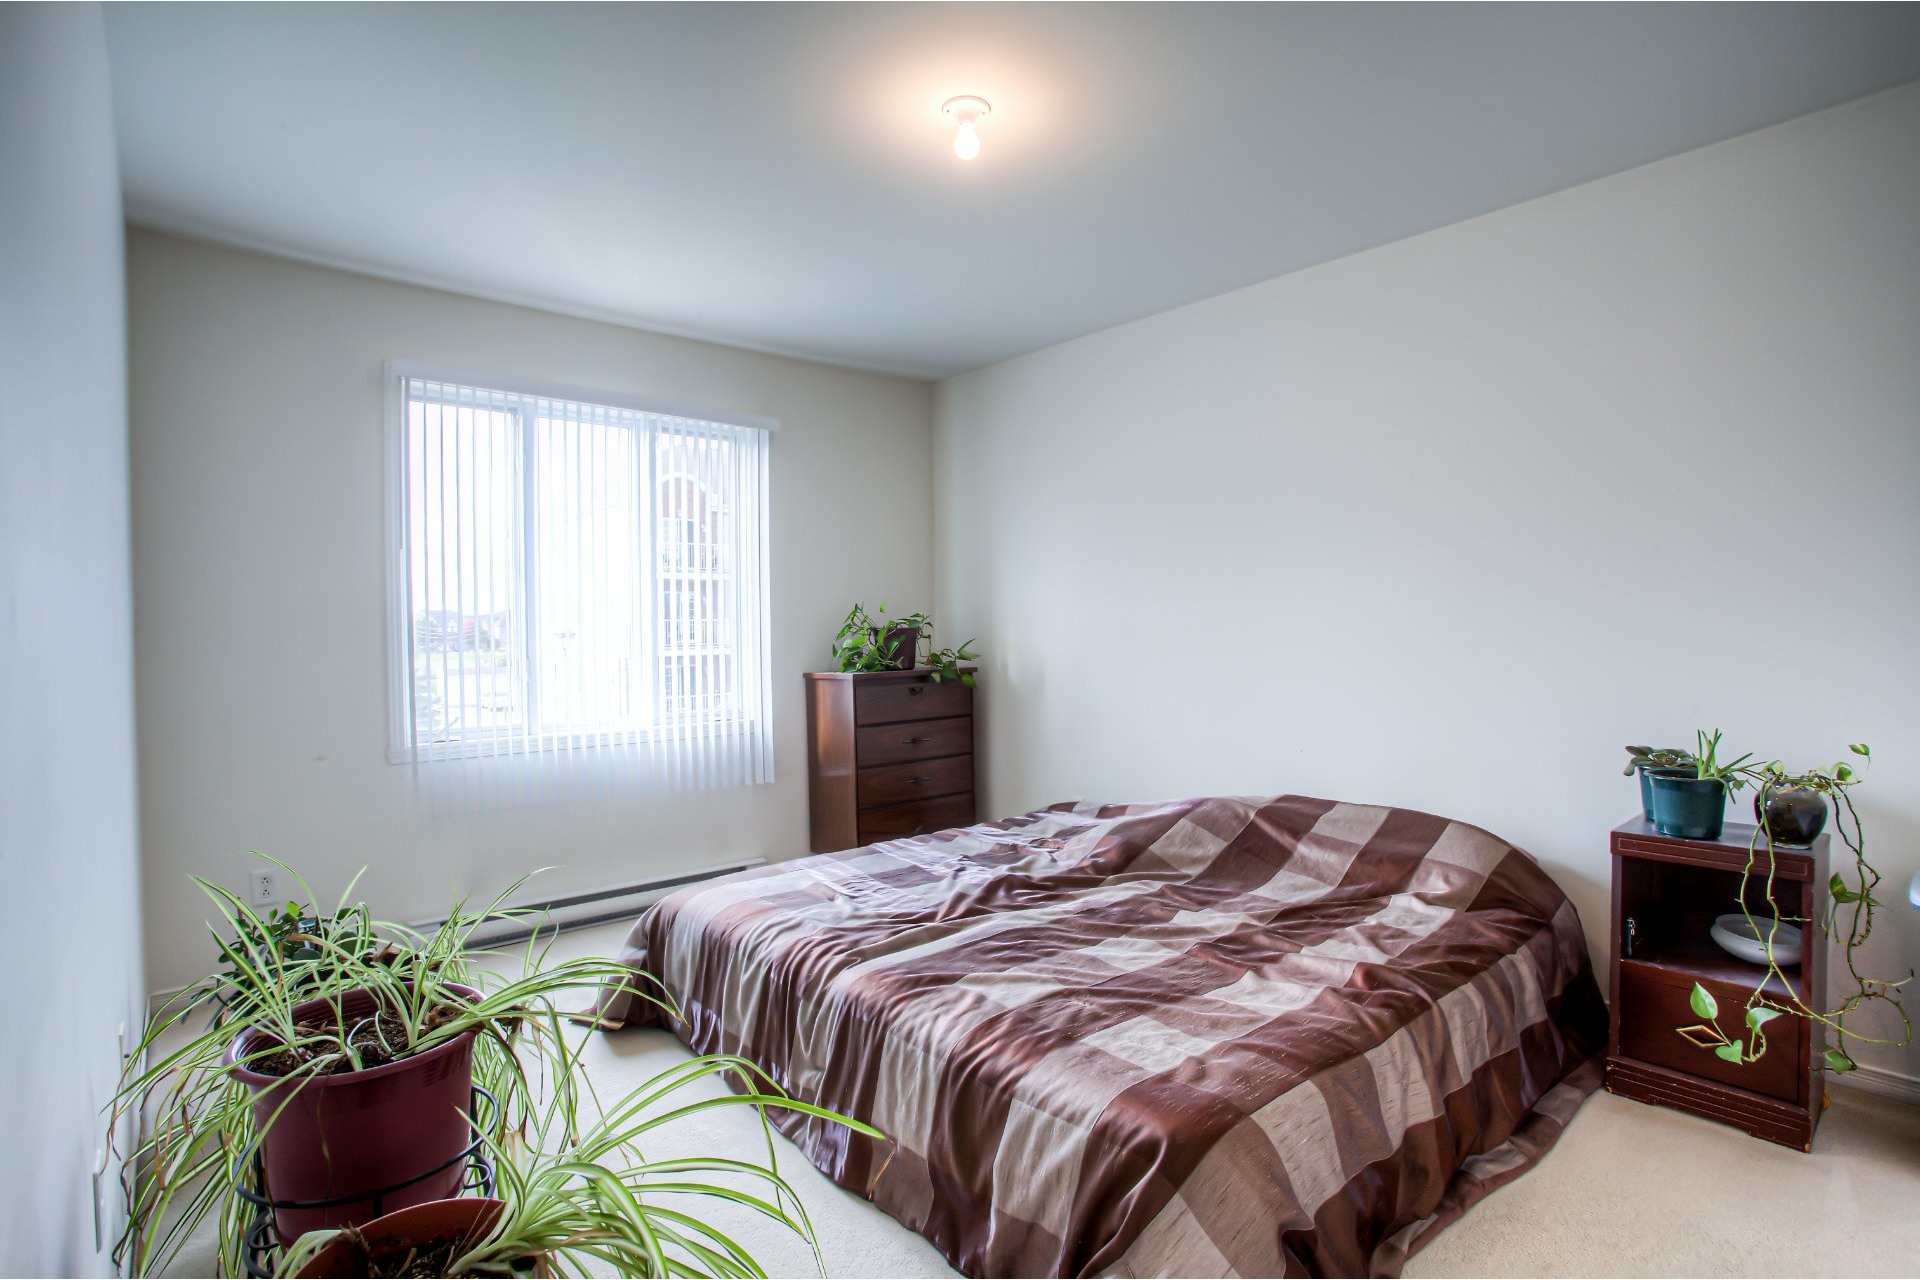 image 5 - House For sale Vaudreuil-Dorion - 8 rooms